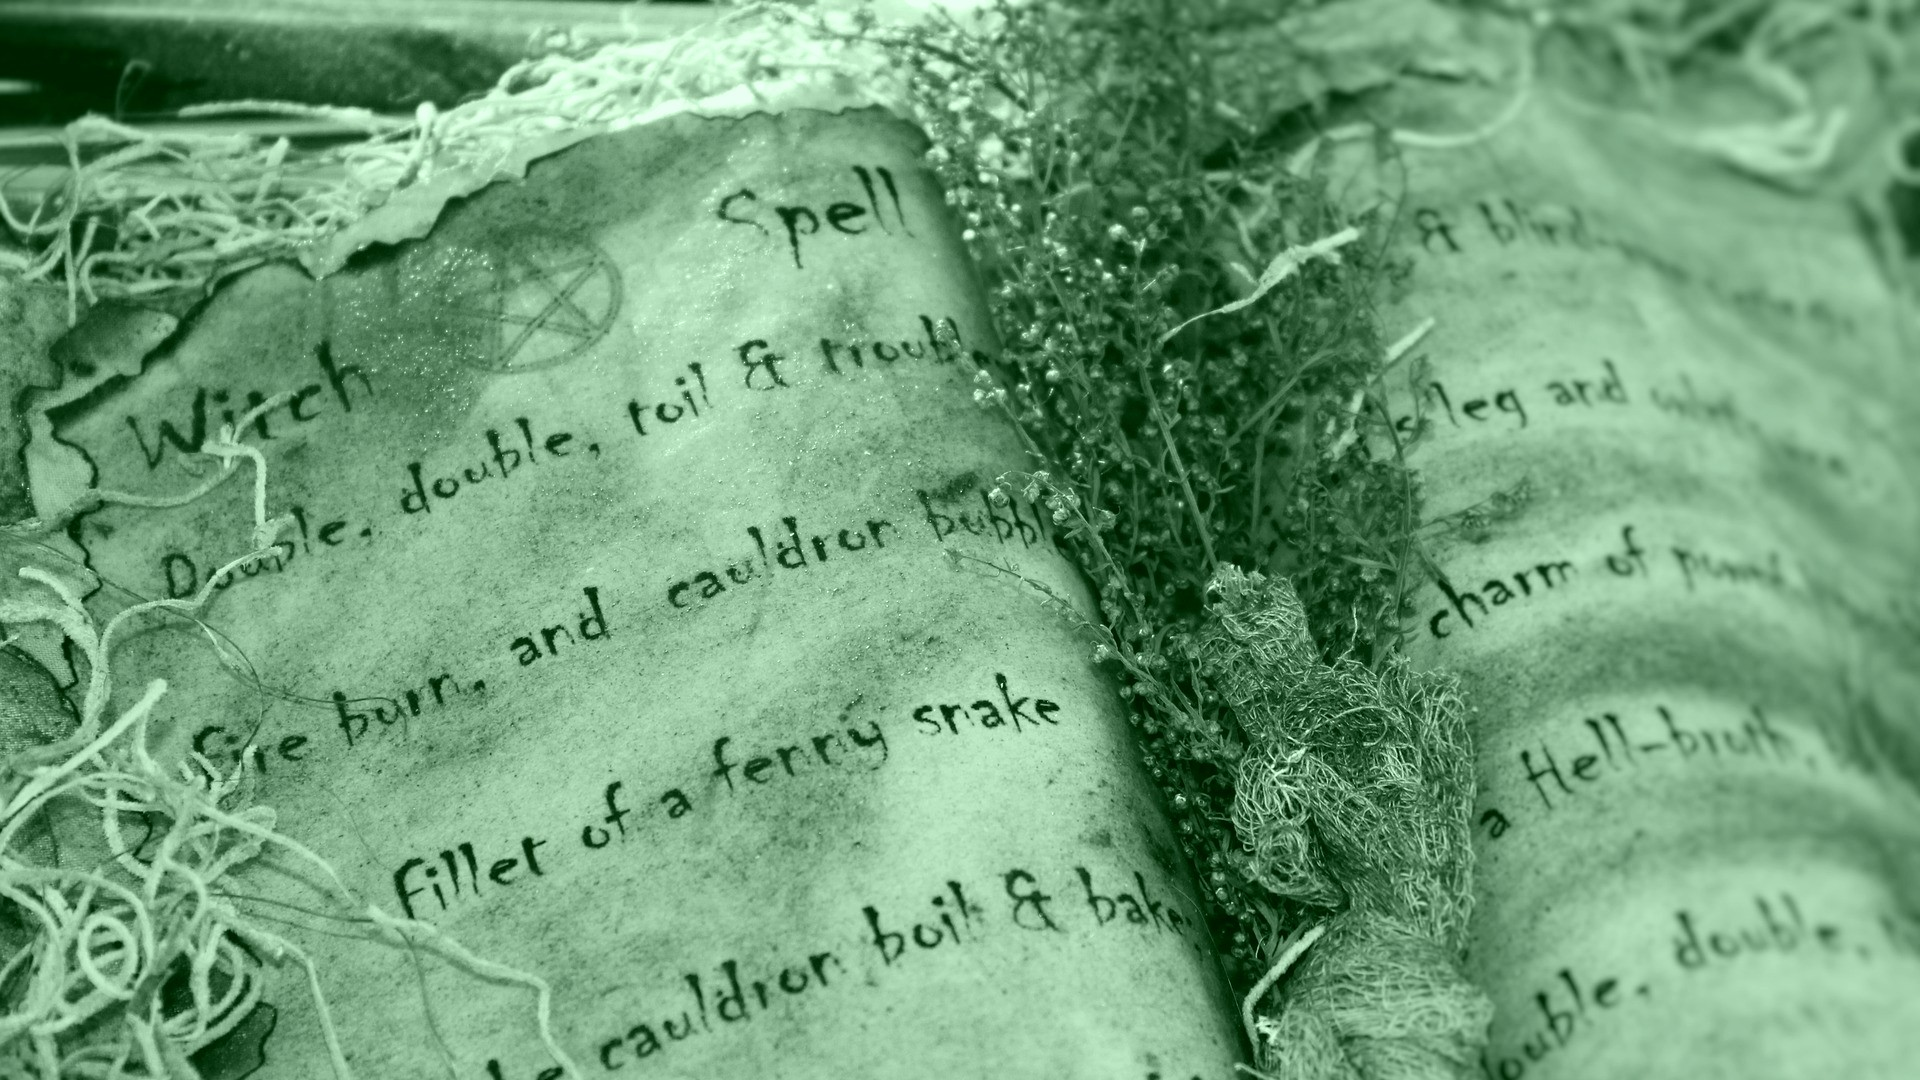 Grimoire of the Green Witches Coven. An online Coven of Witches sharing tips on Witchcraft and casting Spells that work with harm to none!